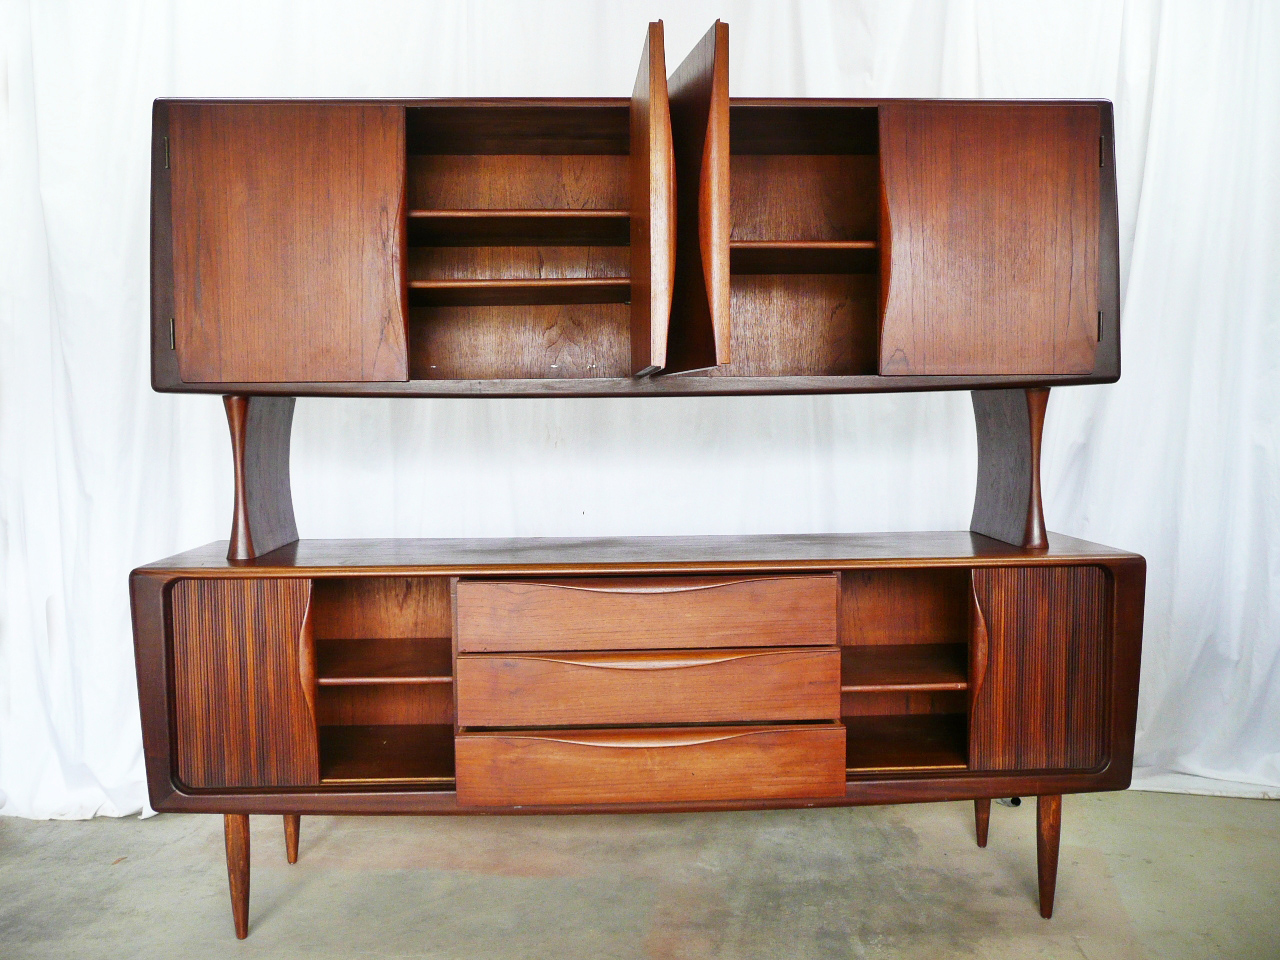 Modern mid century danish vintage furniture shop used Mid century furniture denver